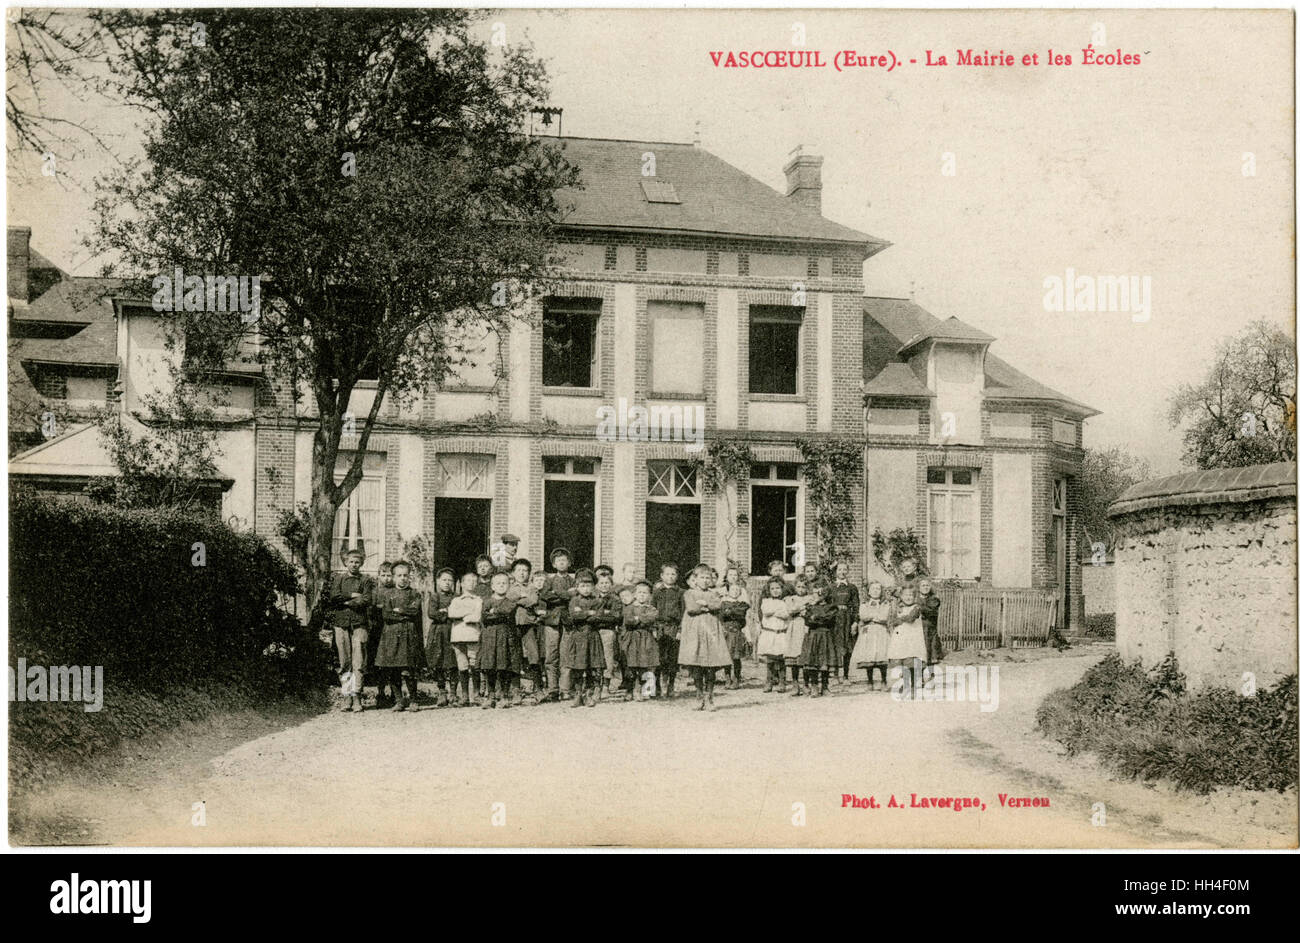 Vascoeuil, a commune in the Eure department in Haute-Normandie in northern France - the Town Hall and the schools - Stock Image